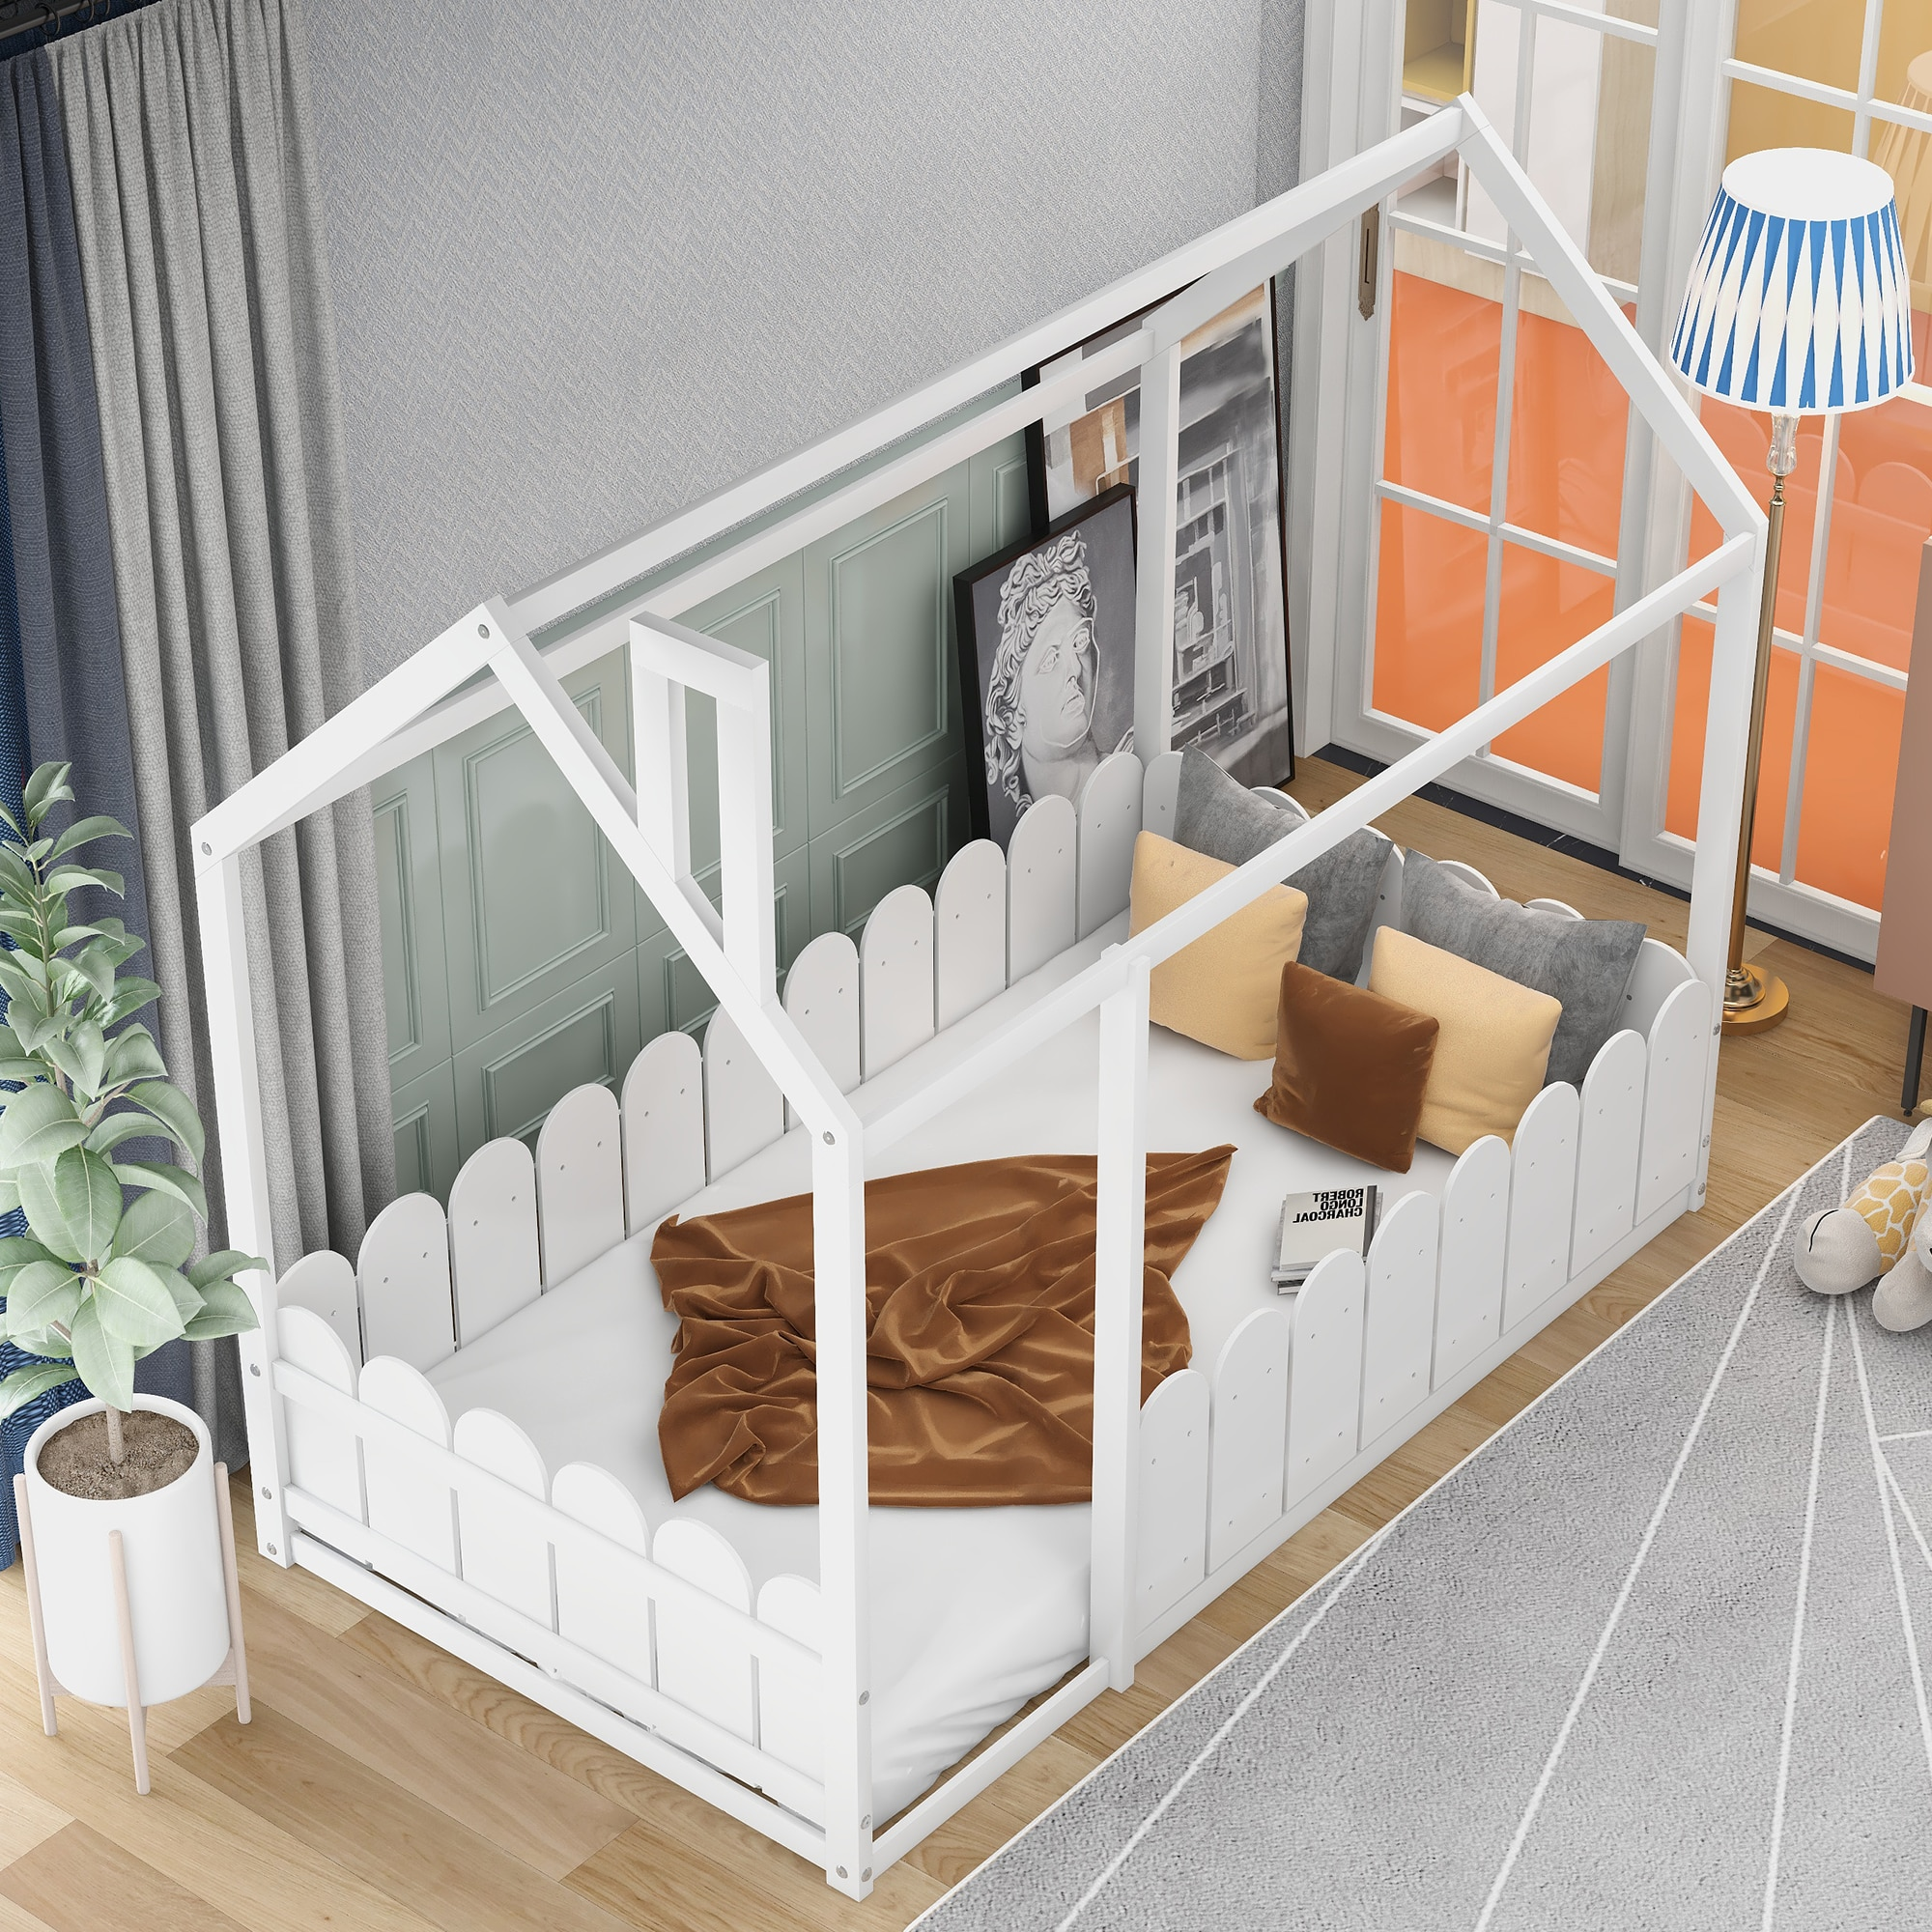 Twin Size Wood Bed House Bed Frame with Fence for Kids Teens Girls Boys Gray/White/Walnut/Espresso(Slats are Not Included)[US-W]